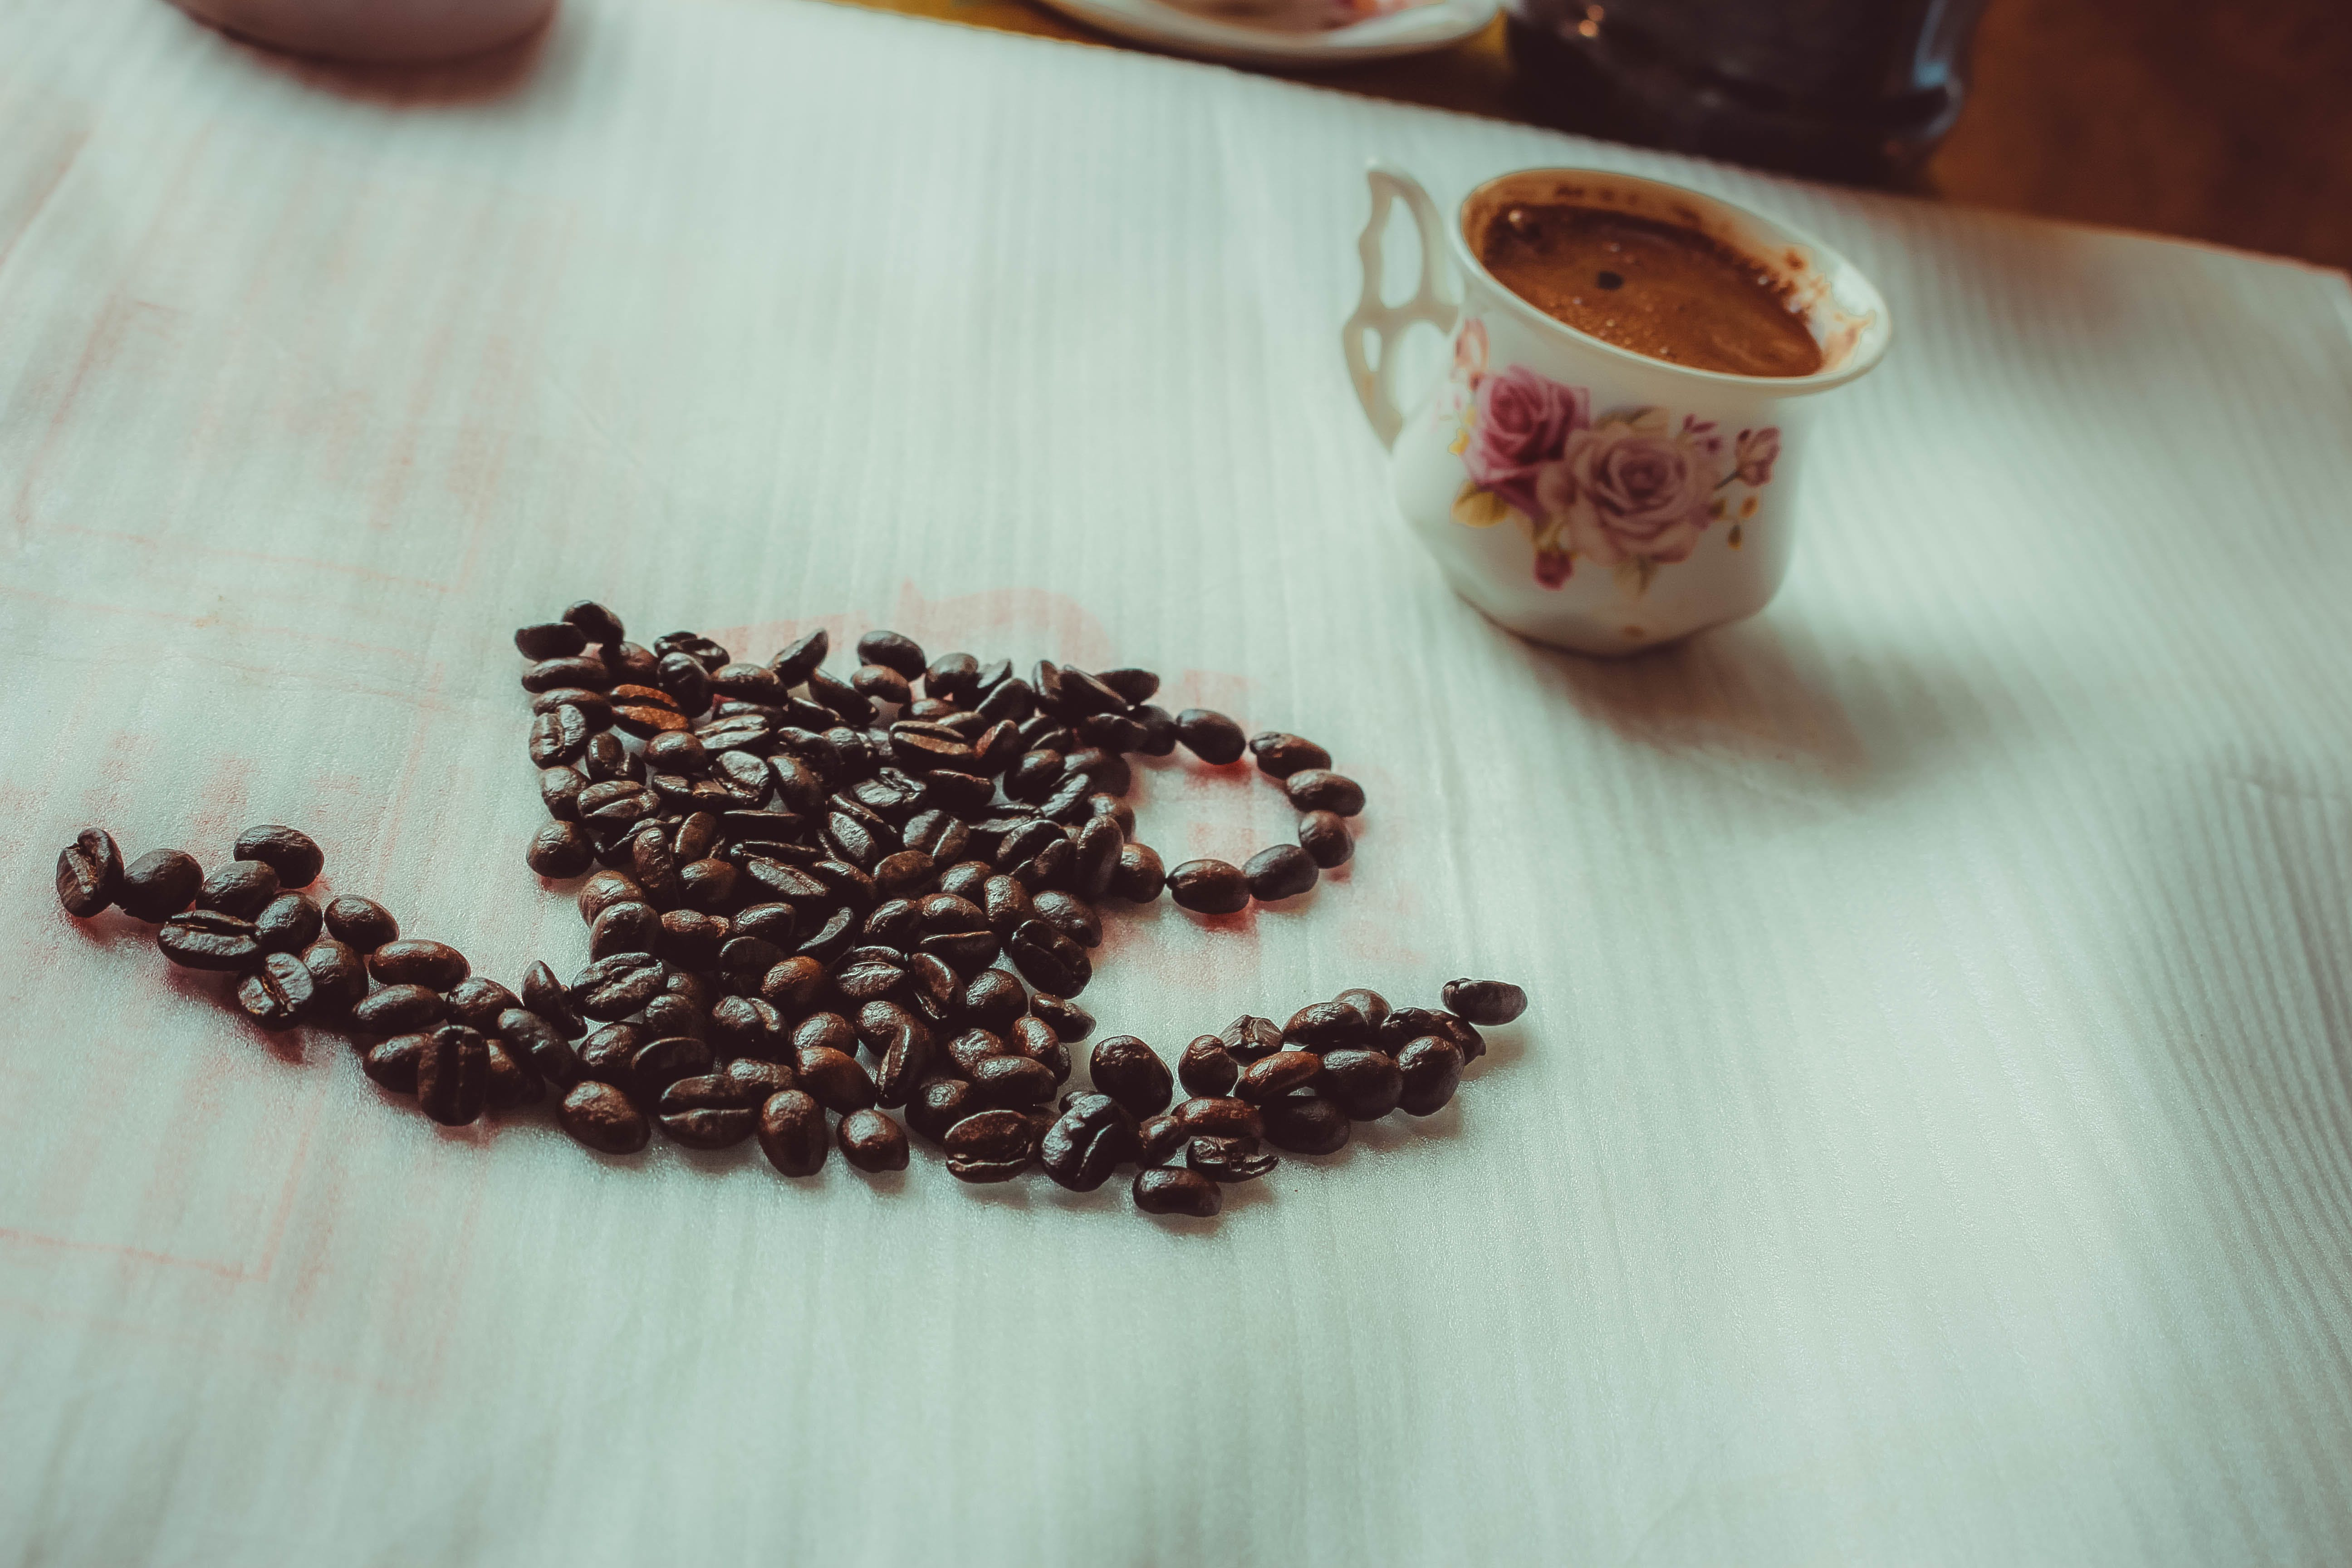 Brown Coffee Beans Beside Ceramic Mug on Table